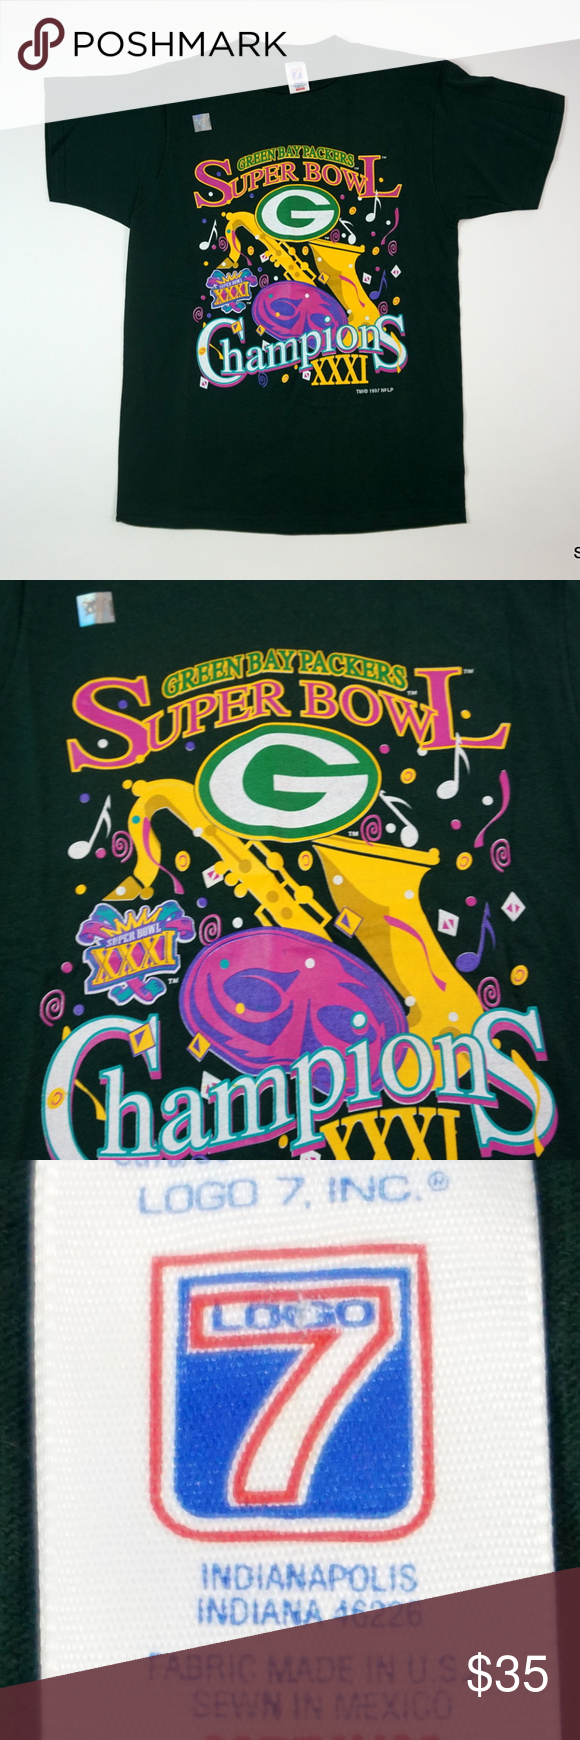 VTG 1997 Green Bay Packers Super Bowl XXXI T-Shirt NWOT Vintage 1997 Green  Bay 6c65790a0